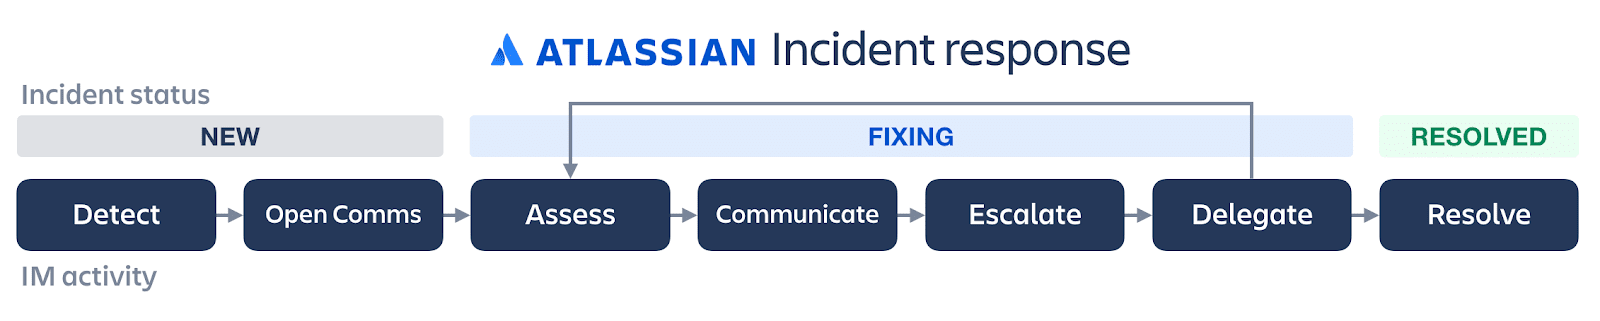 Atlassian's incident response lyfecycle chart